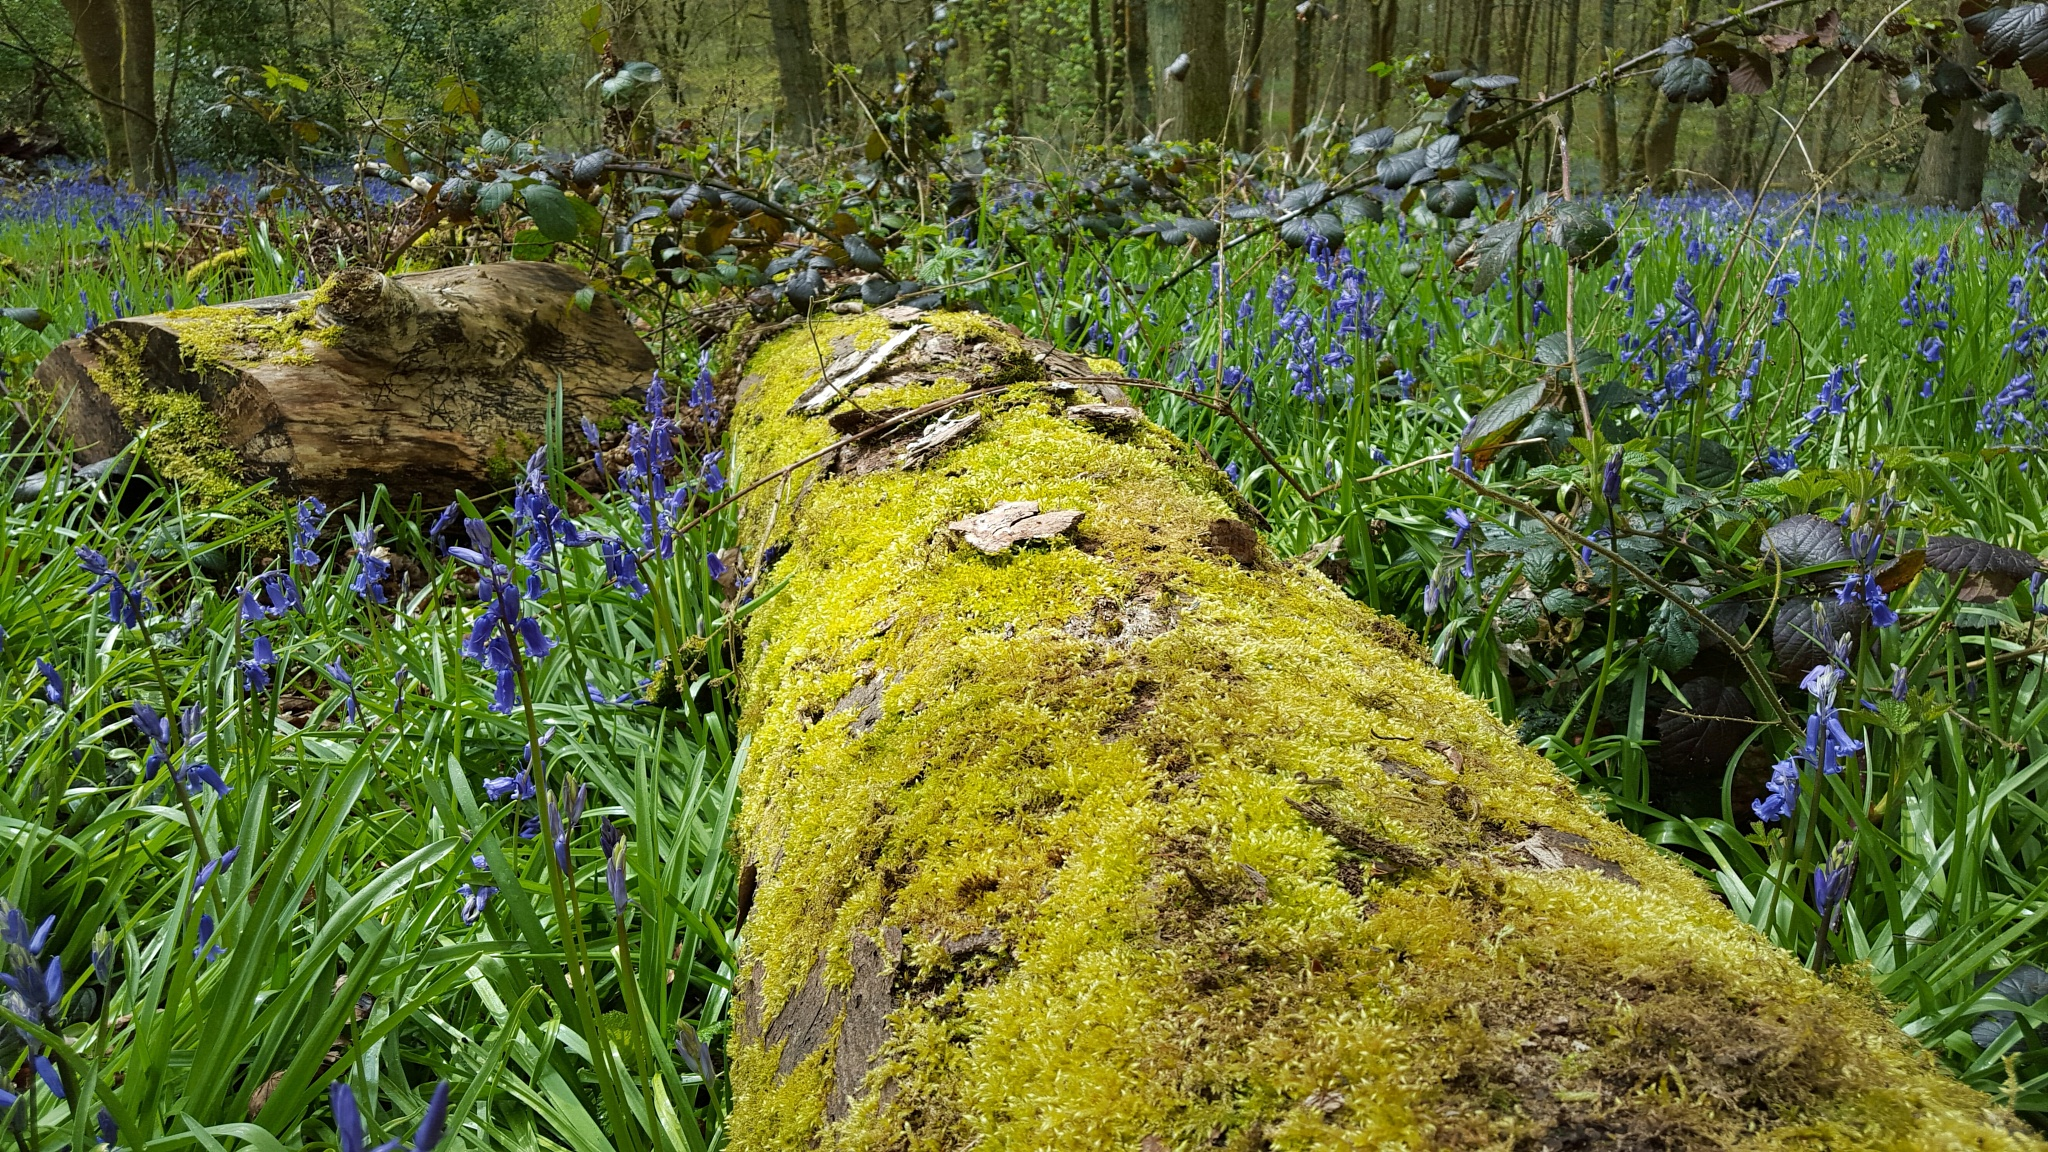 Mossy log amongst the bluebells by andrea.lysons